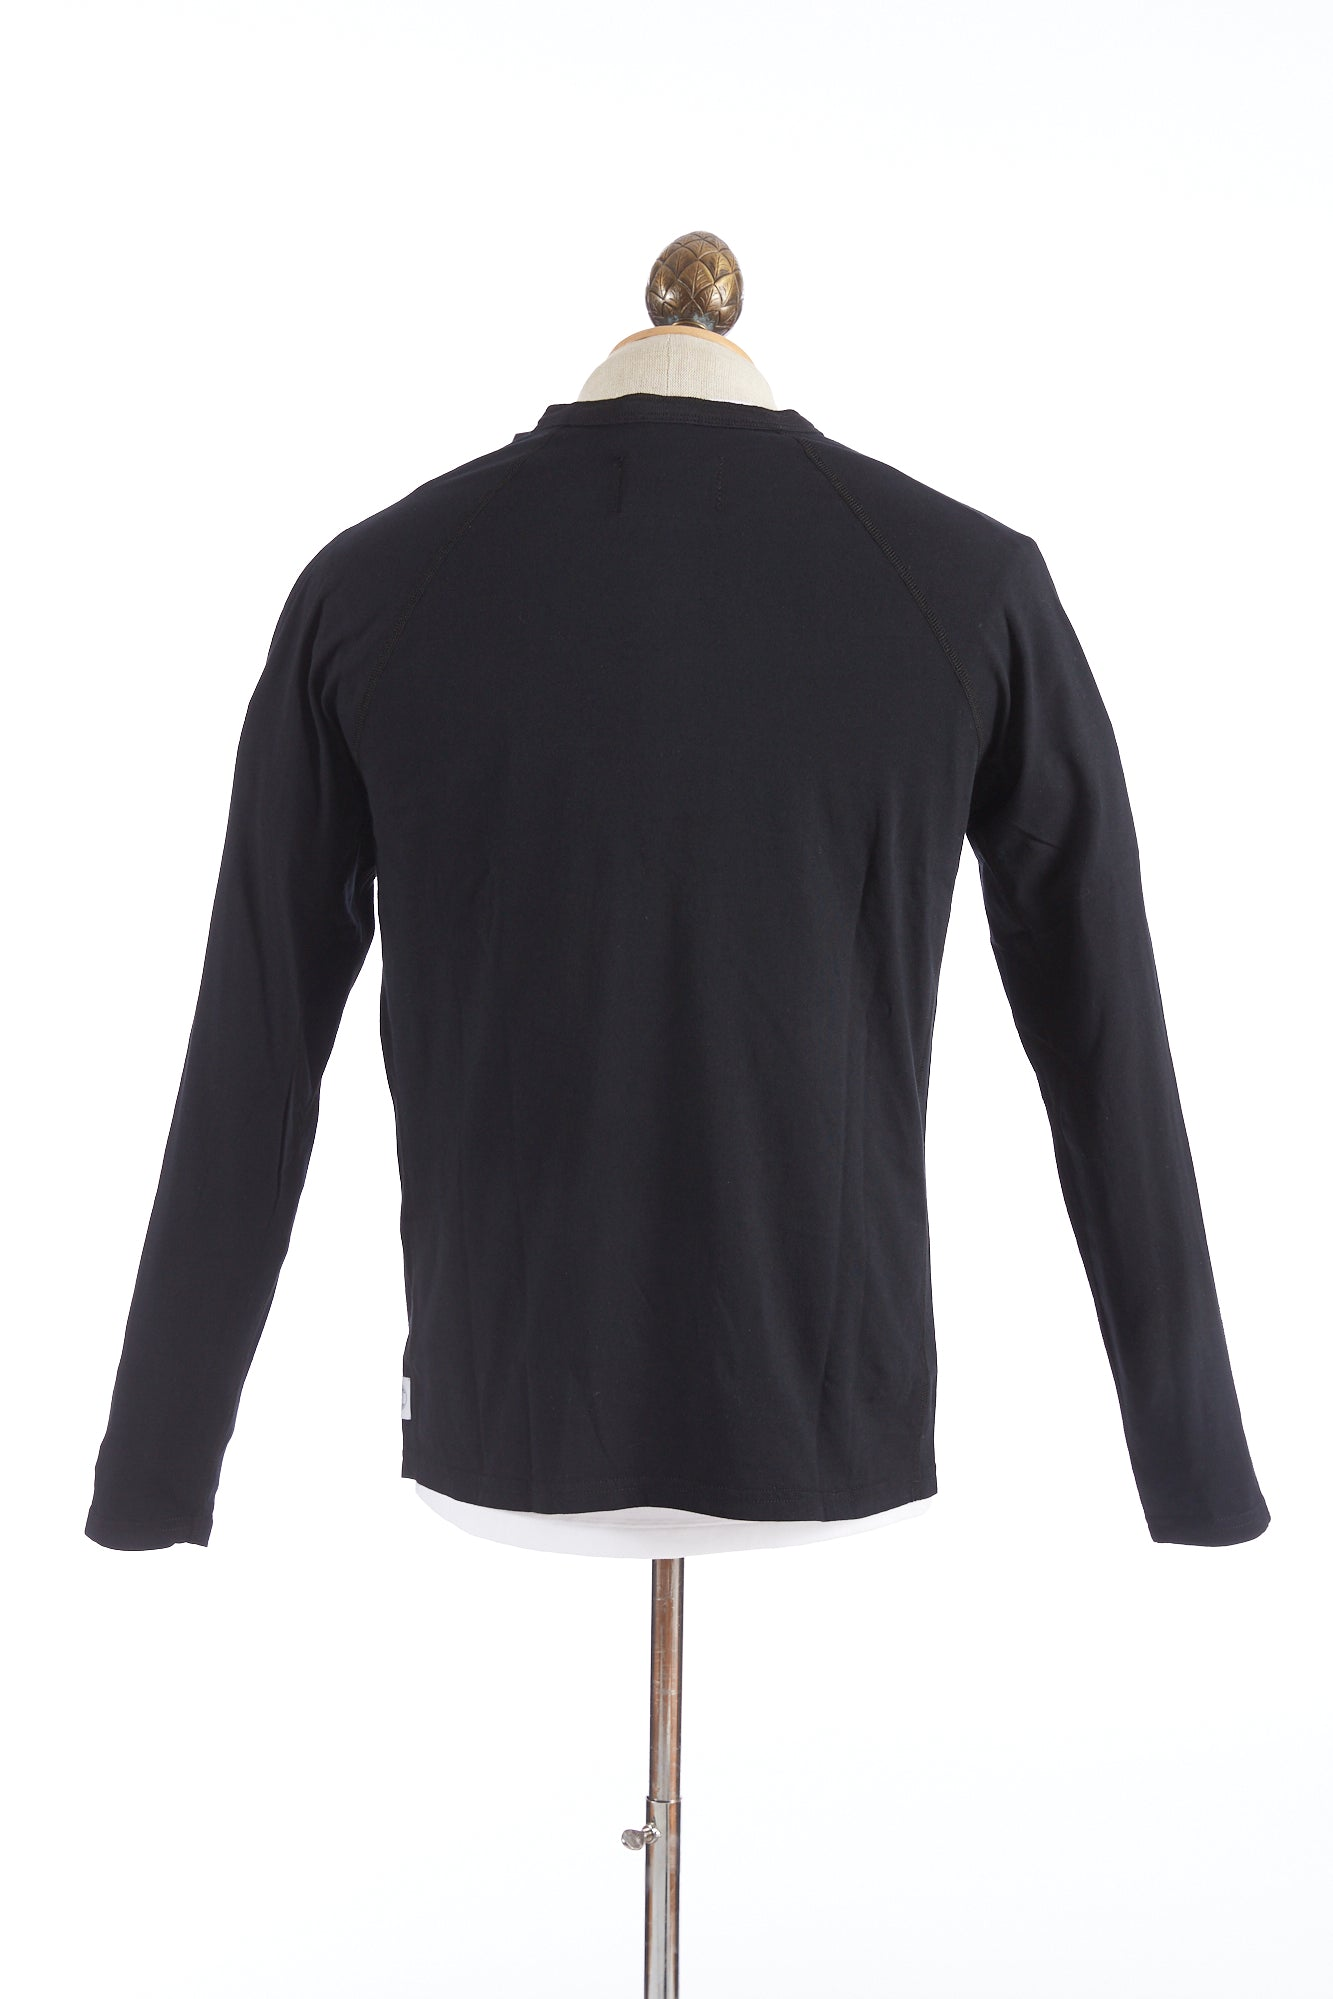 Reigning Champ Black Cotton Henley Longsleeve T-Shirt